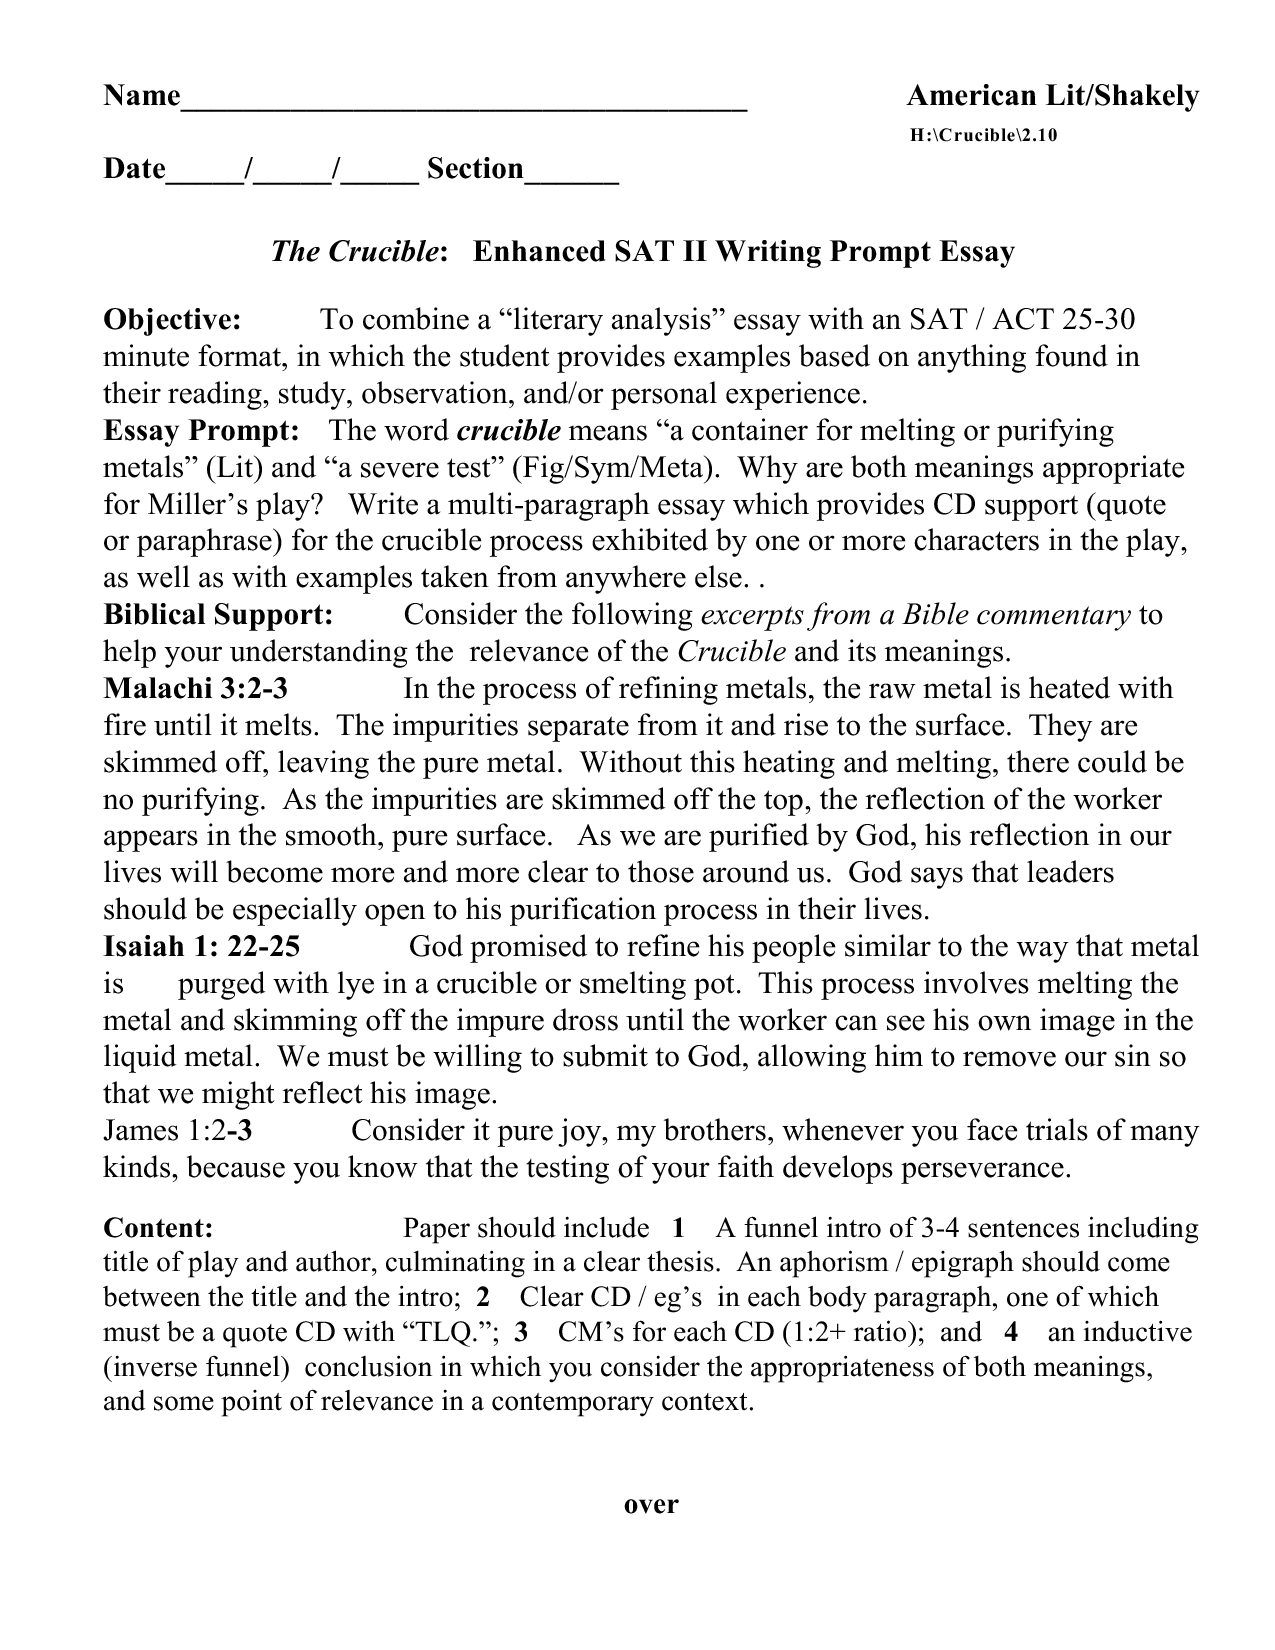 002 Sat Essay Sample Example Quotes Quotesgram Is There An On The L Wondrous Pdf Full